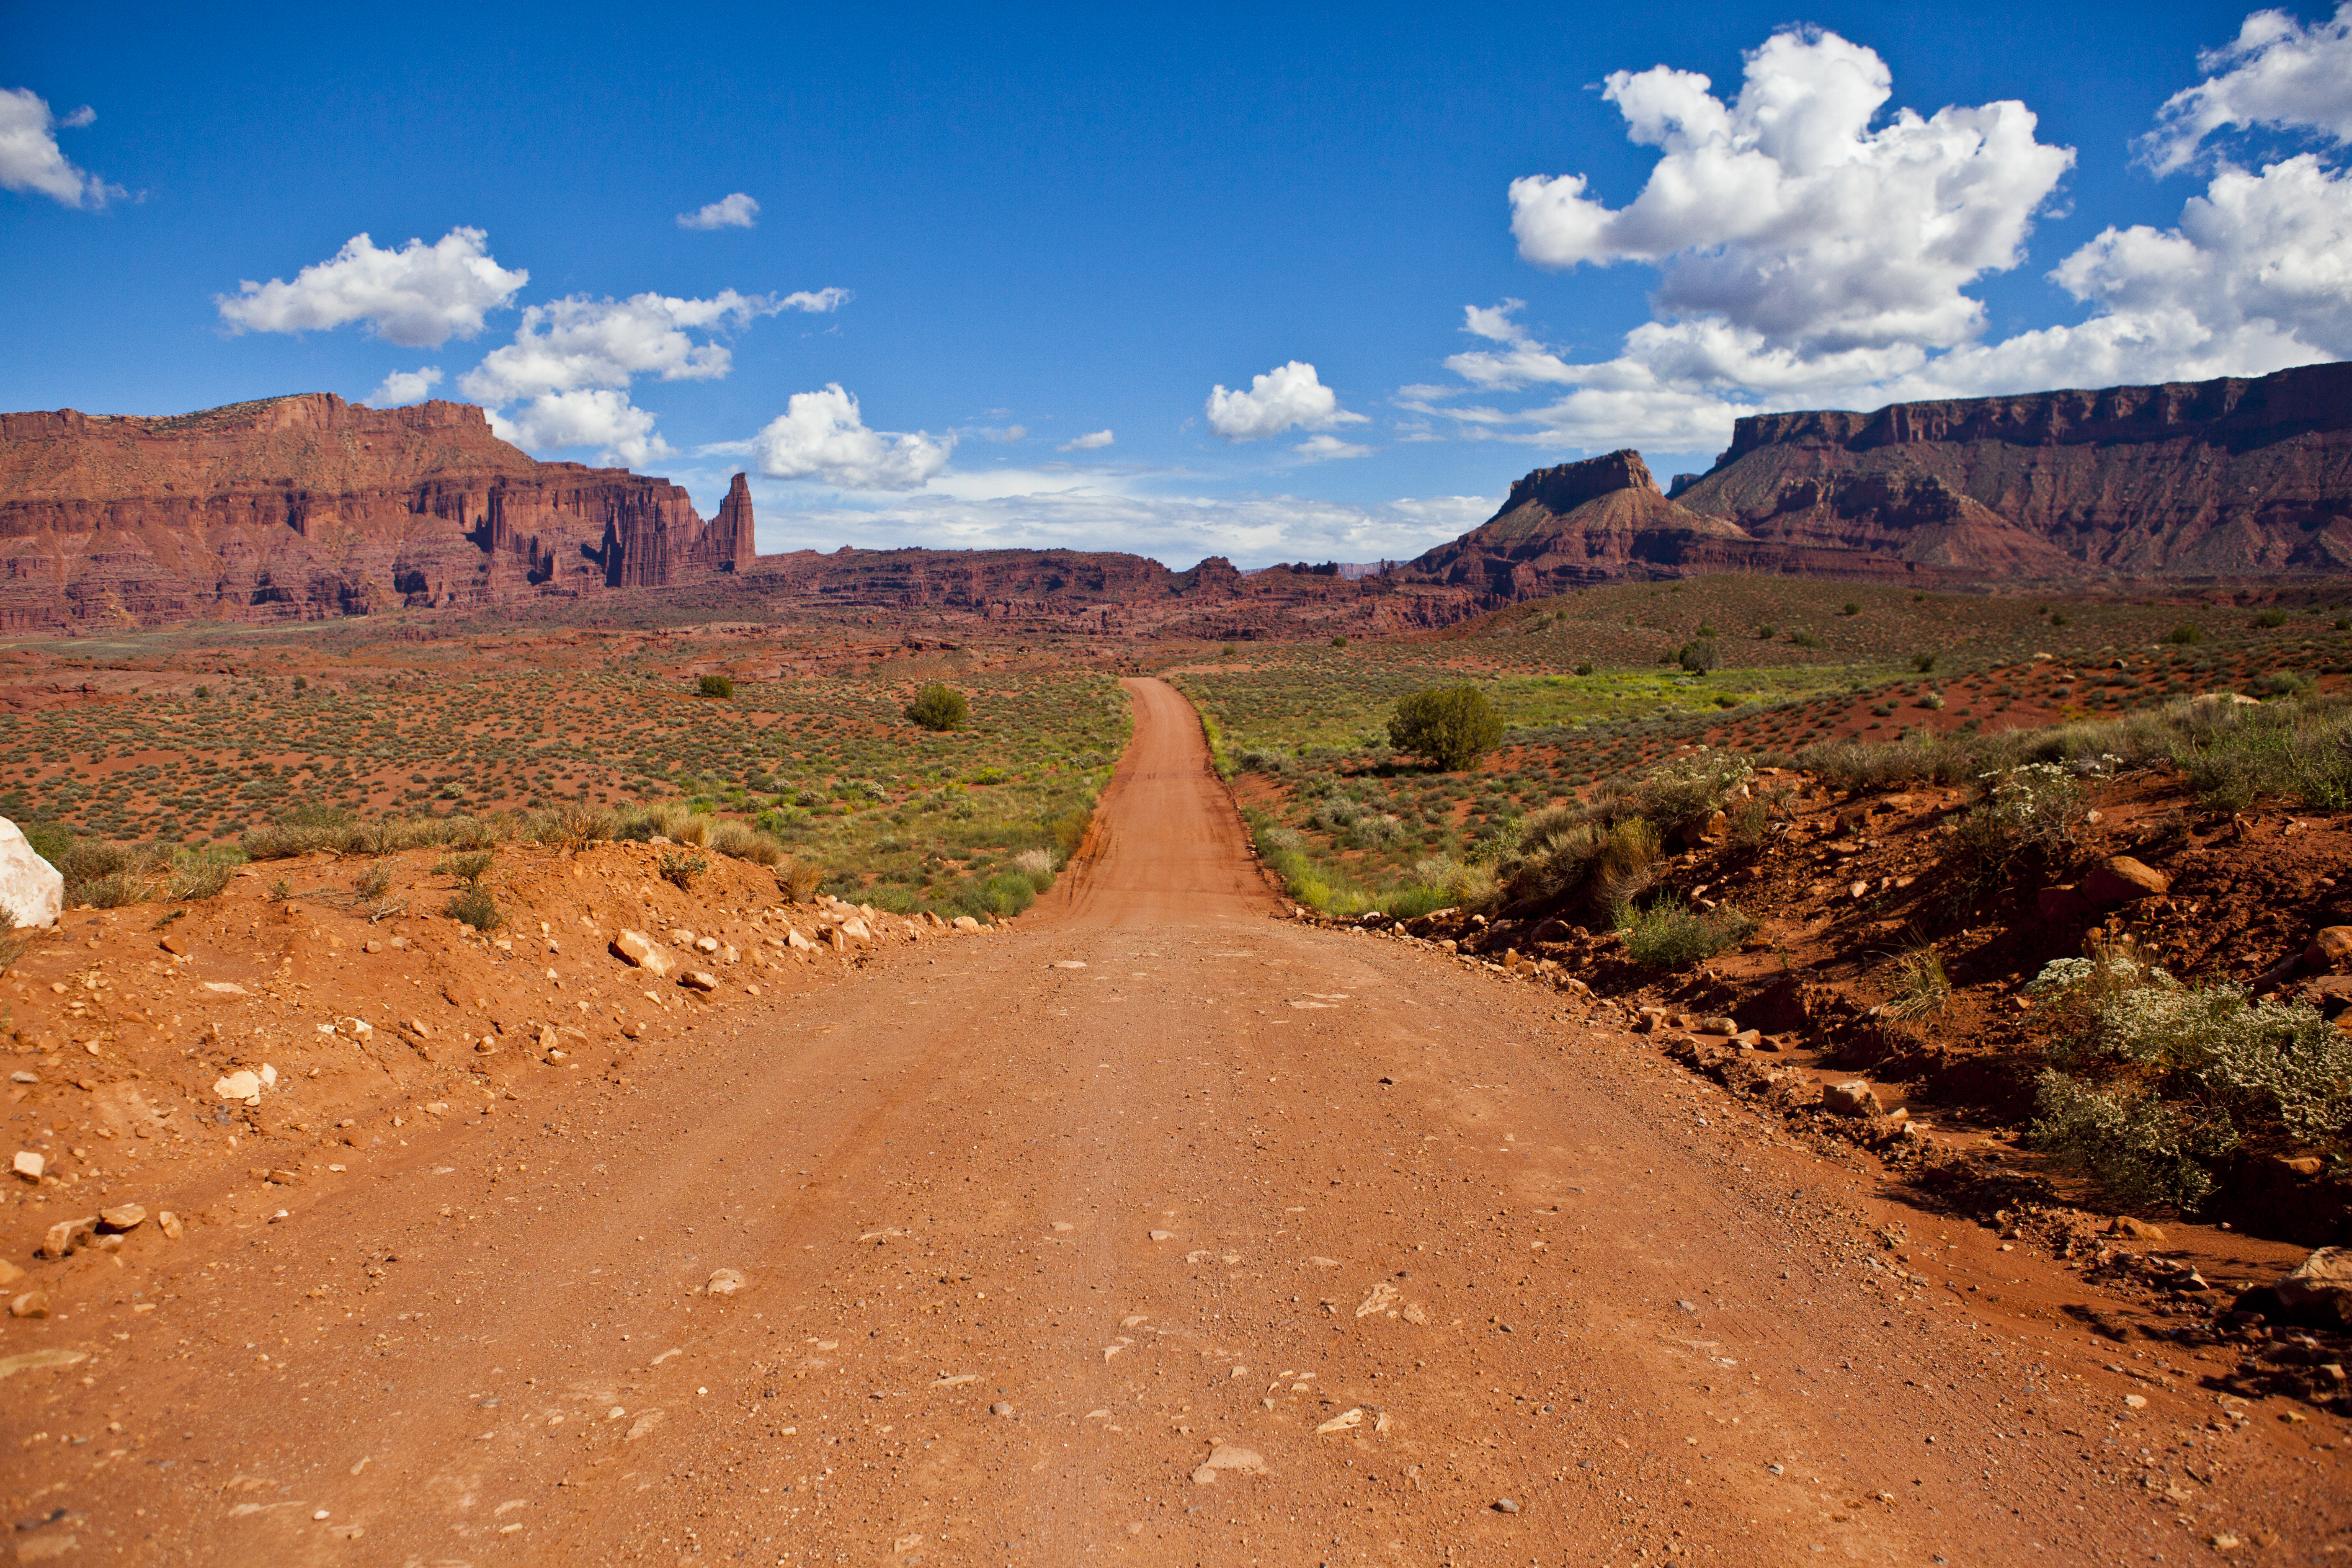 92859 download wallpaper Nature, Path, Canyon, Rocks, Deserted, Moab, Utah screensavers and pictures for free